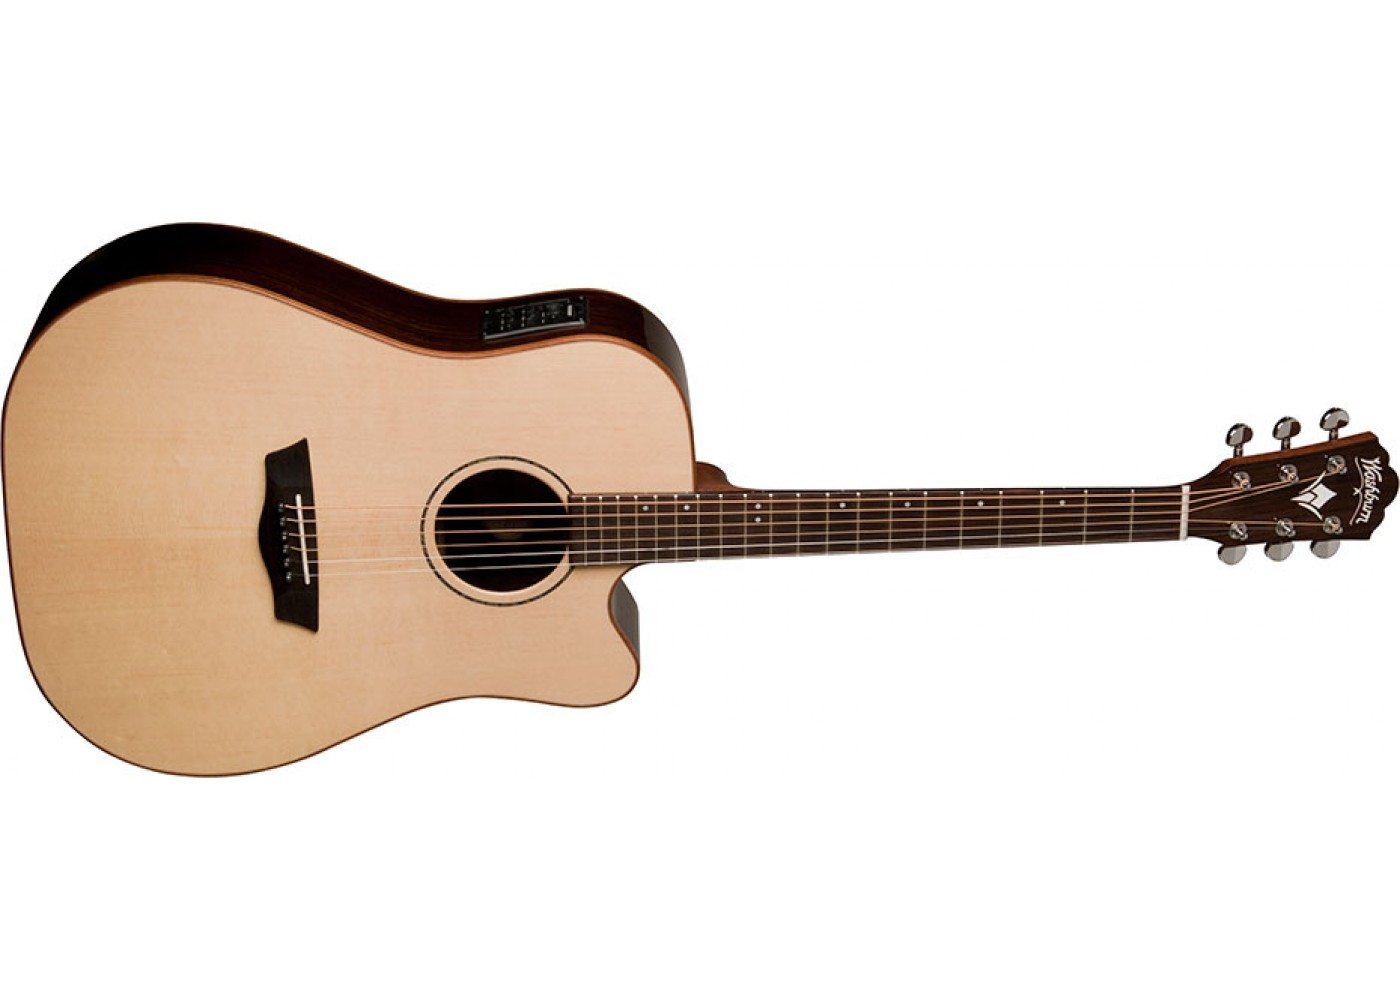 Washburnwd250swce All Solid Wood Dreadnought Acoustic